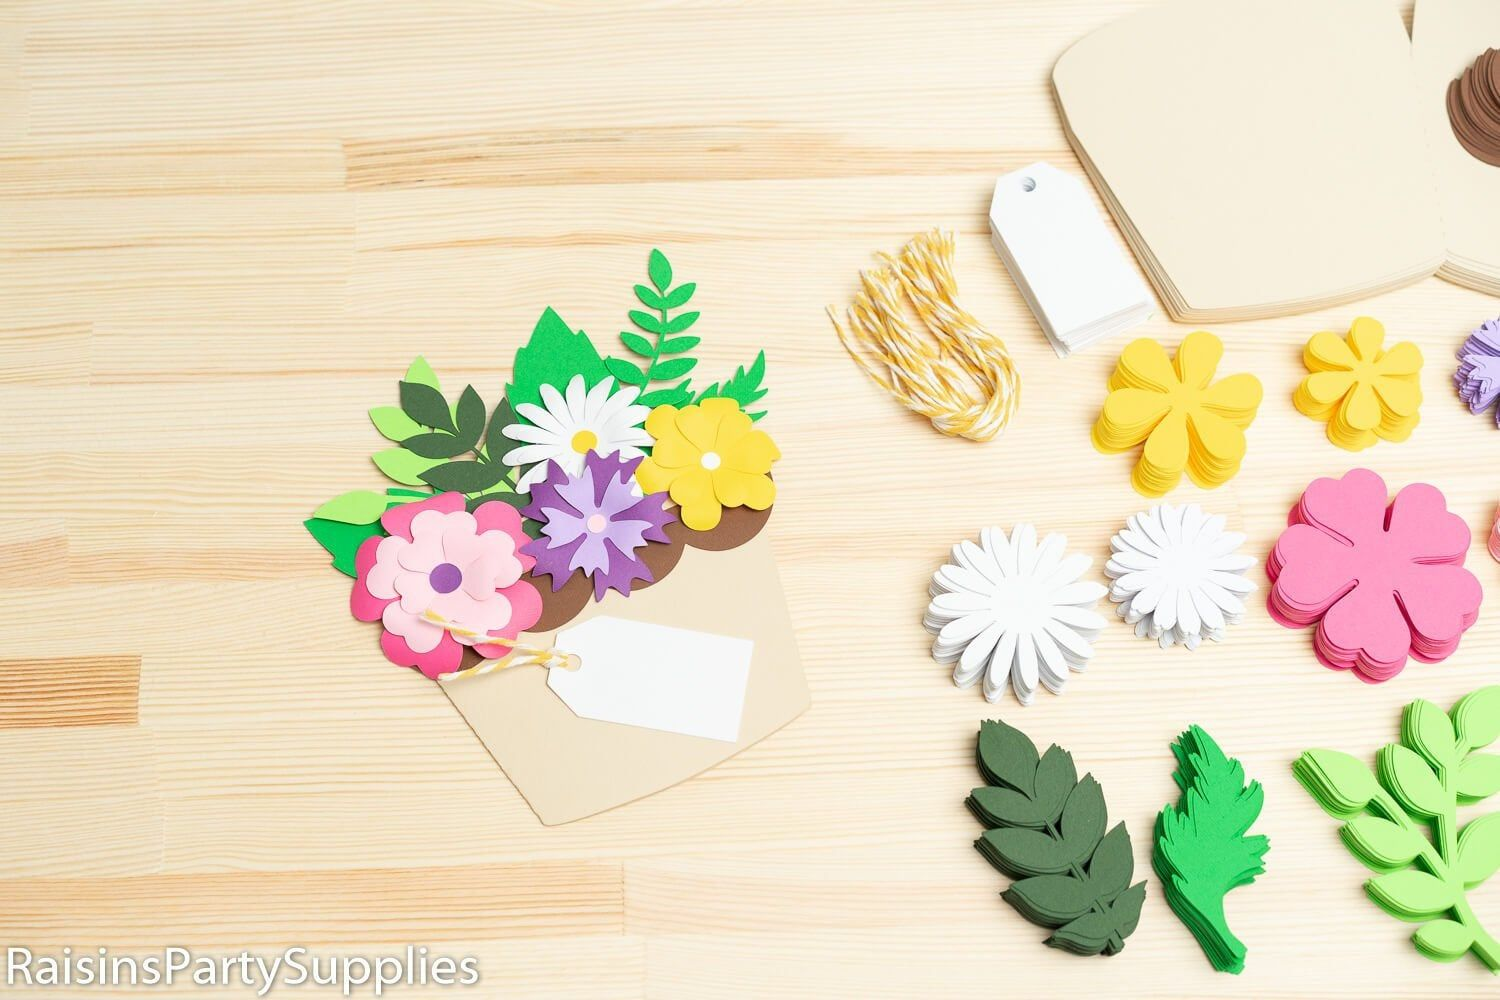 42+ Diy craft kits for adults canada ideas in 2021